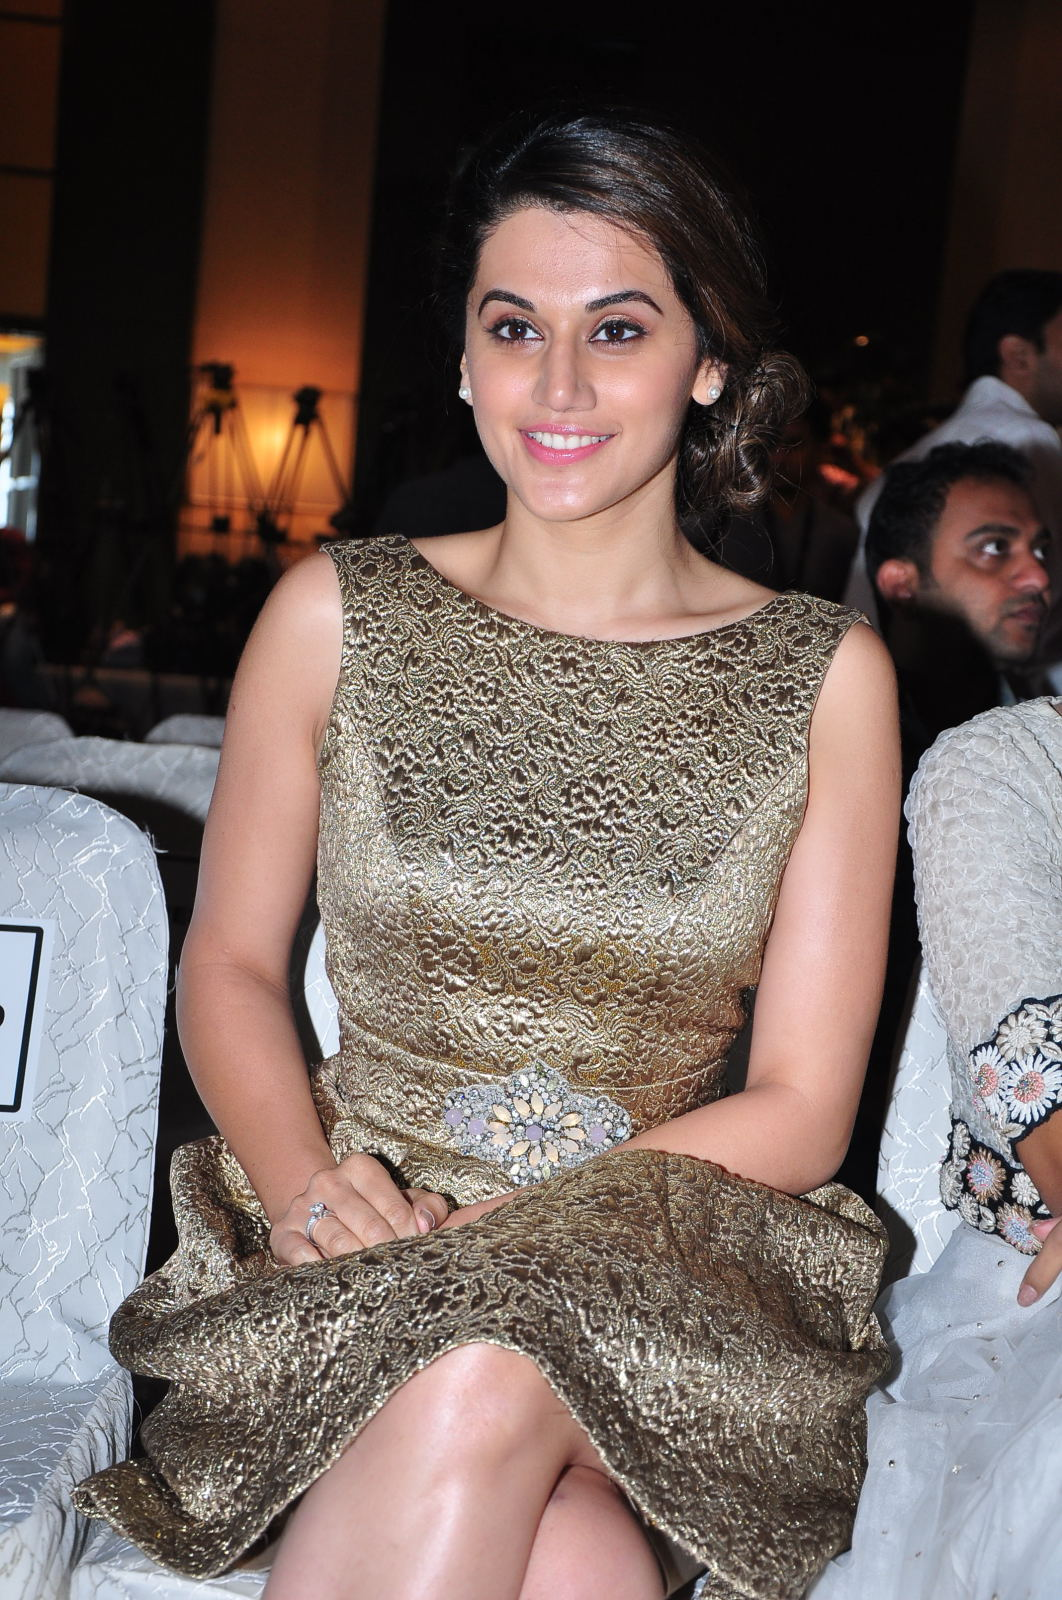 Spicy Taapsee Pannu Legs Show Images In Short Dress